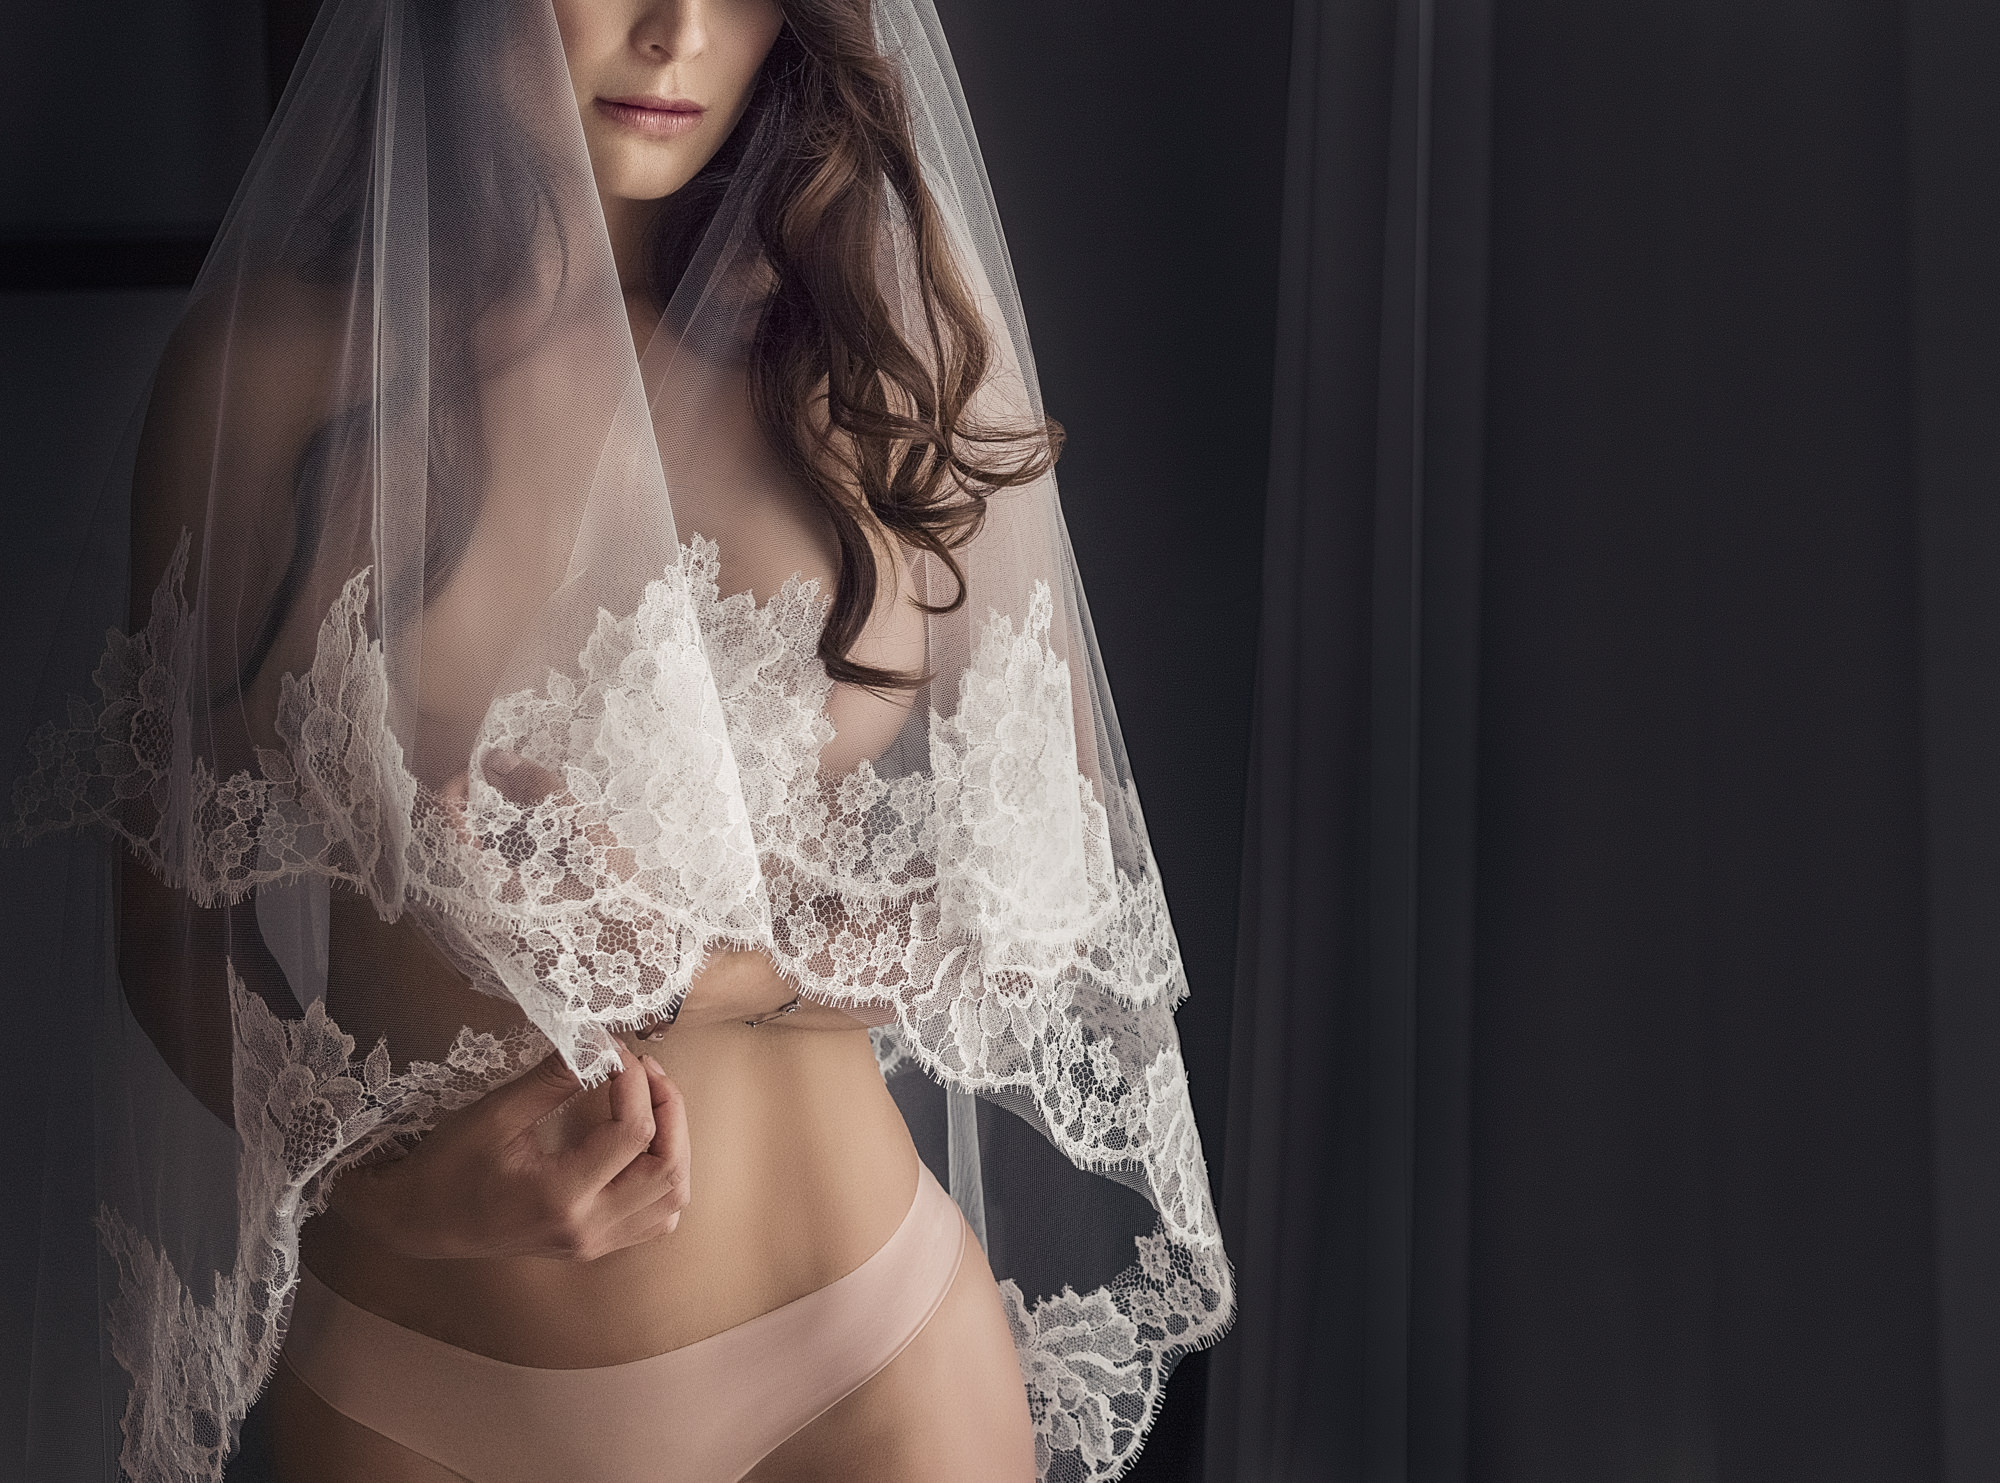 Sexy photo of topless bride with covering mantilla veil by Roberto Valenzuela